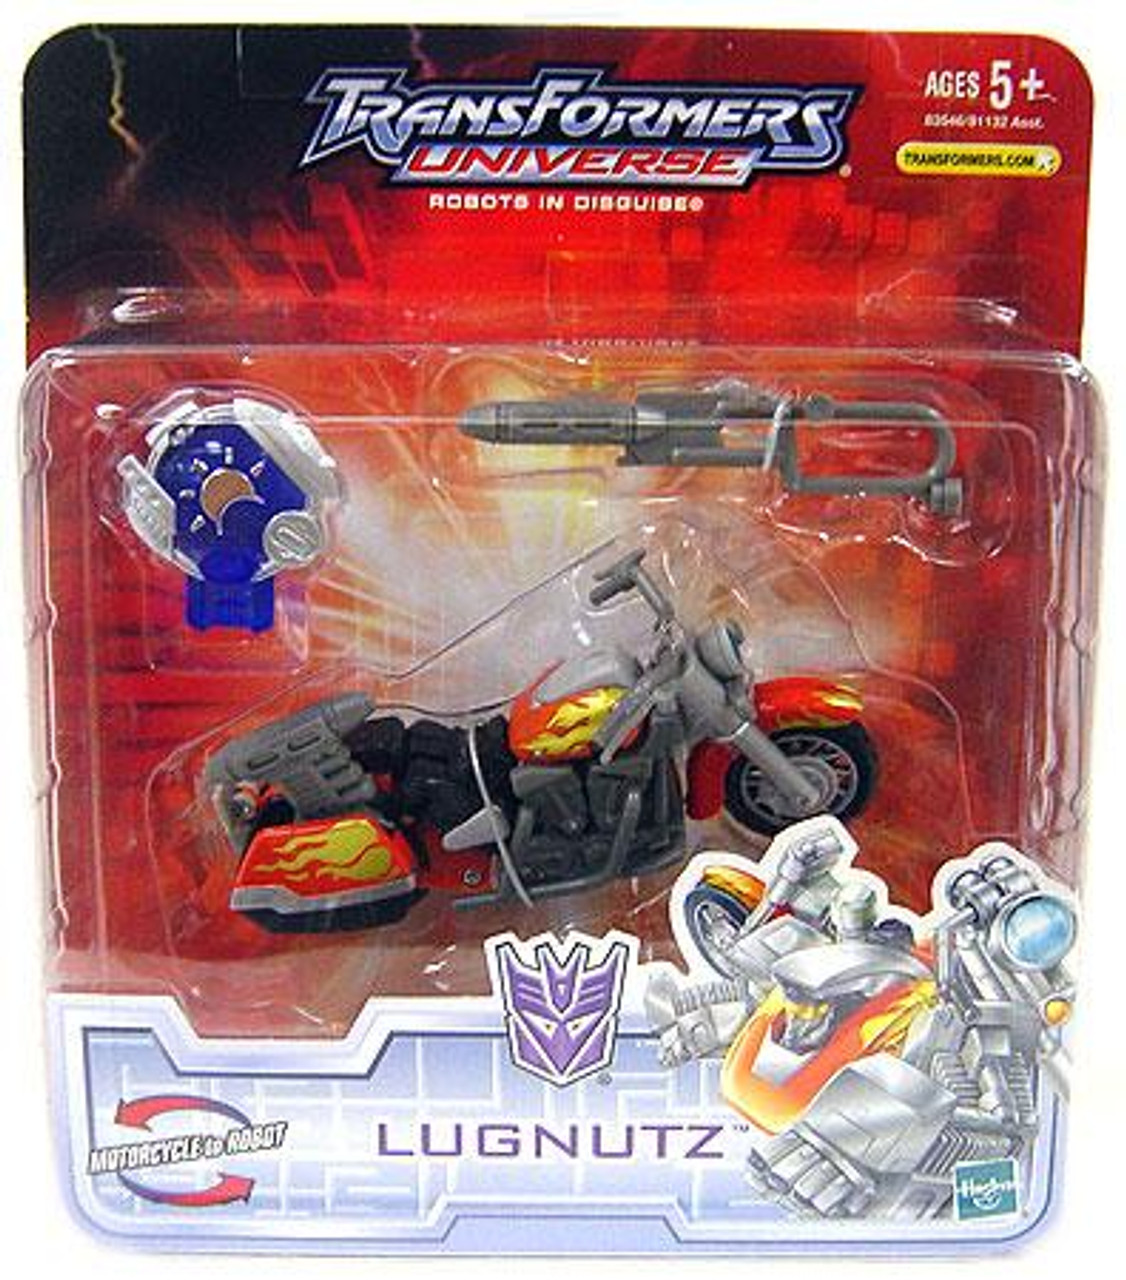 Transformers Universe Robots in Disguise Lugnutz Action Figure